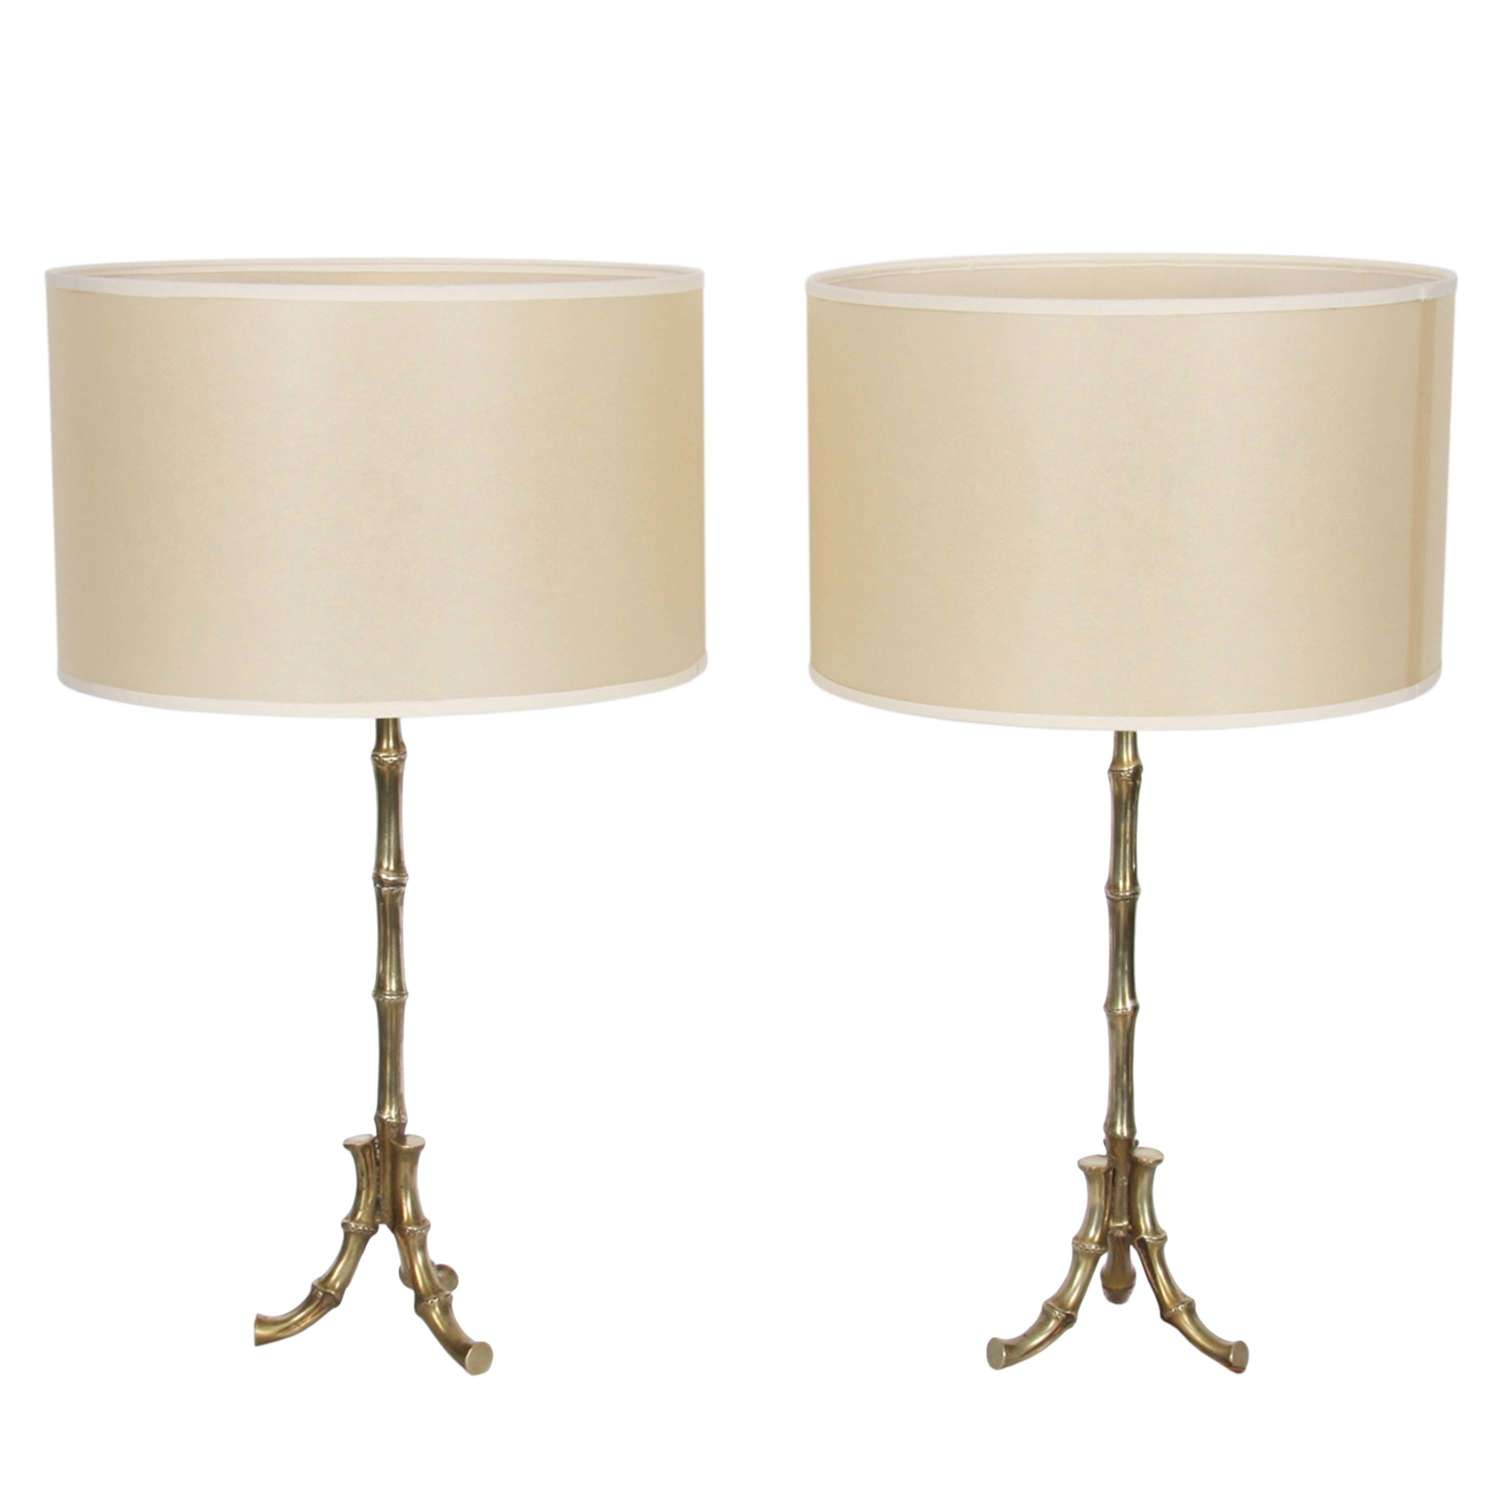 Pair of French 1960s Faux Bamboo Table Lamps